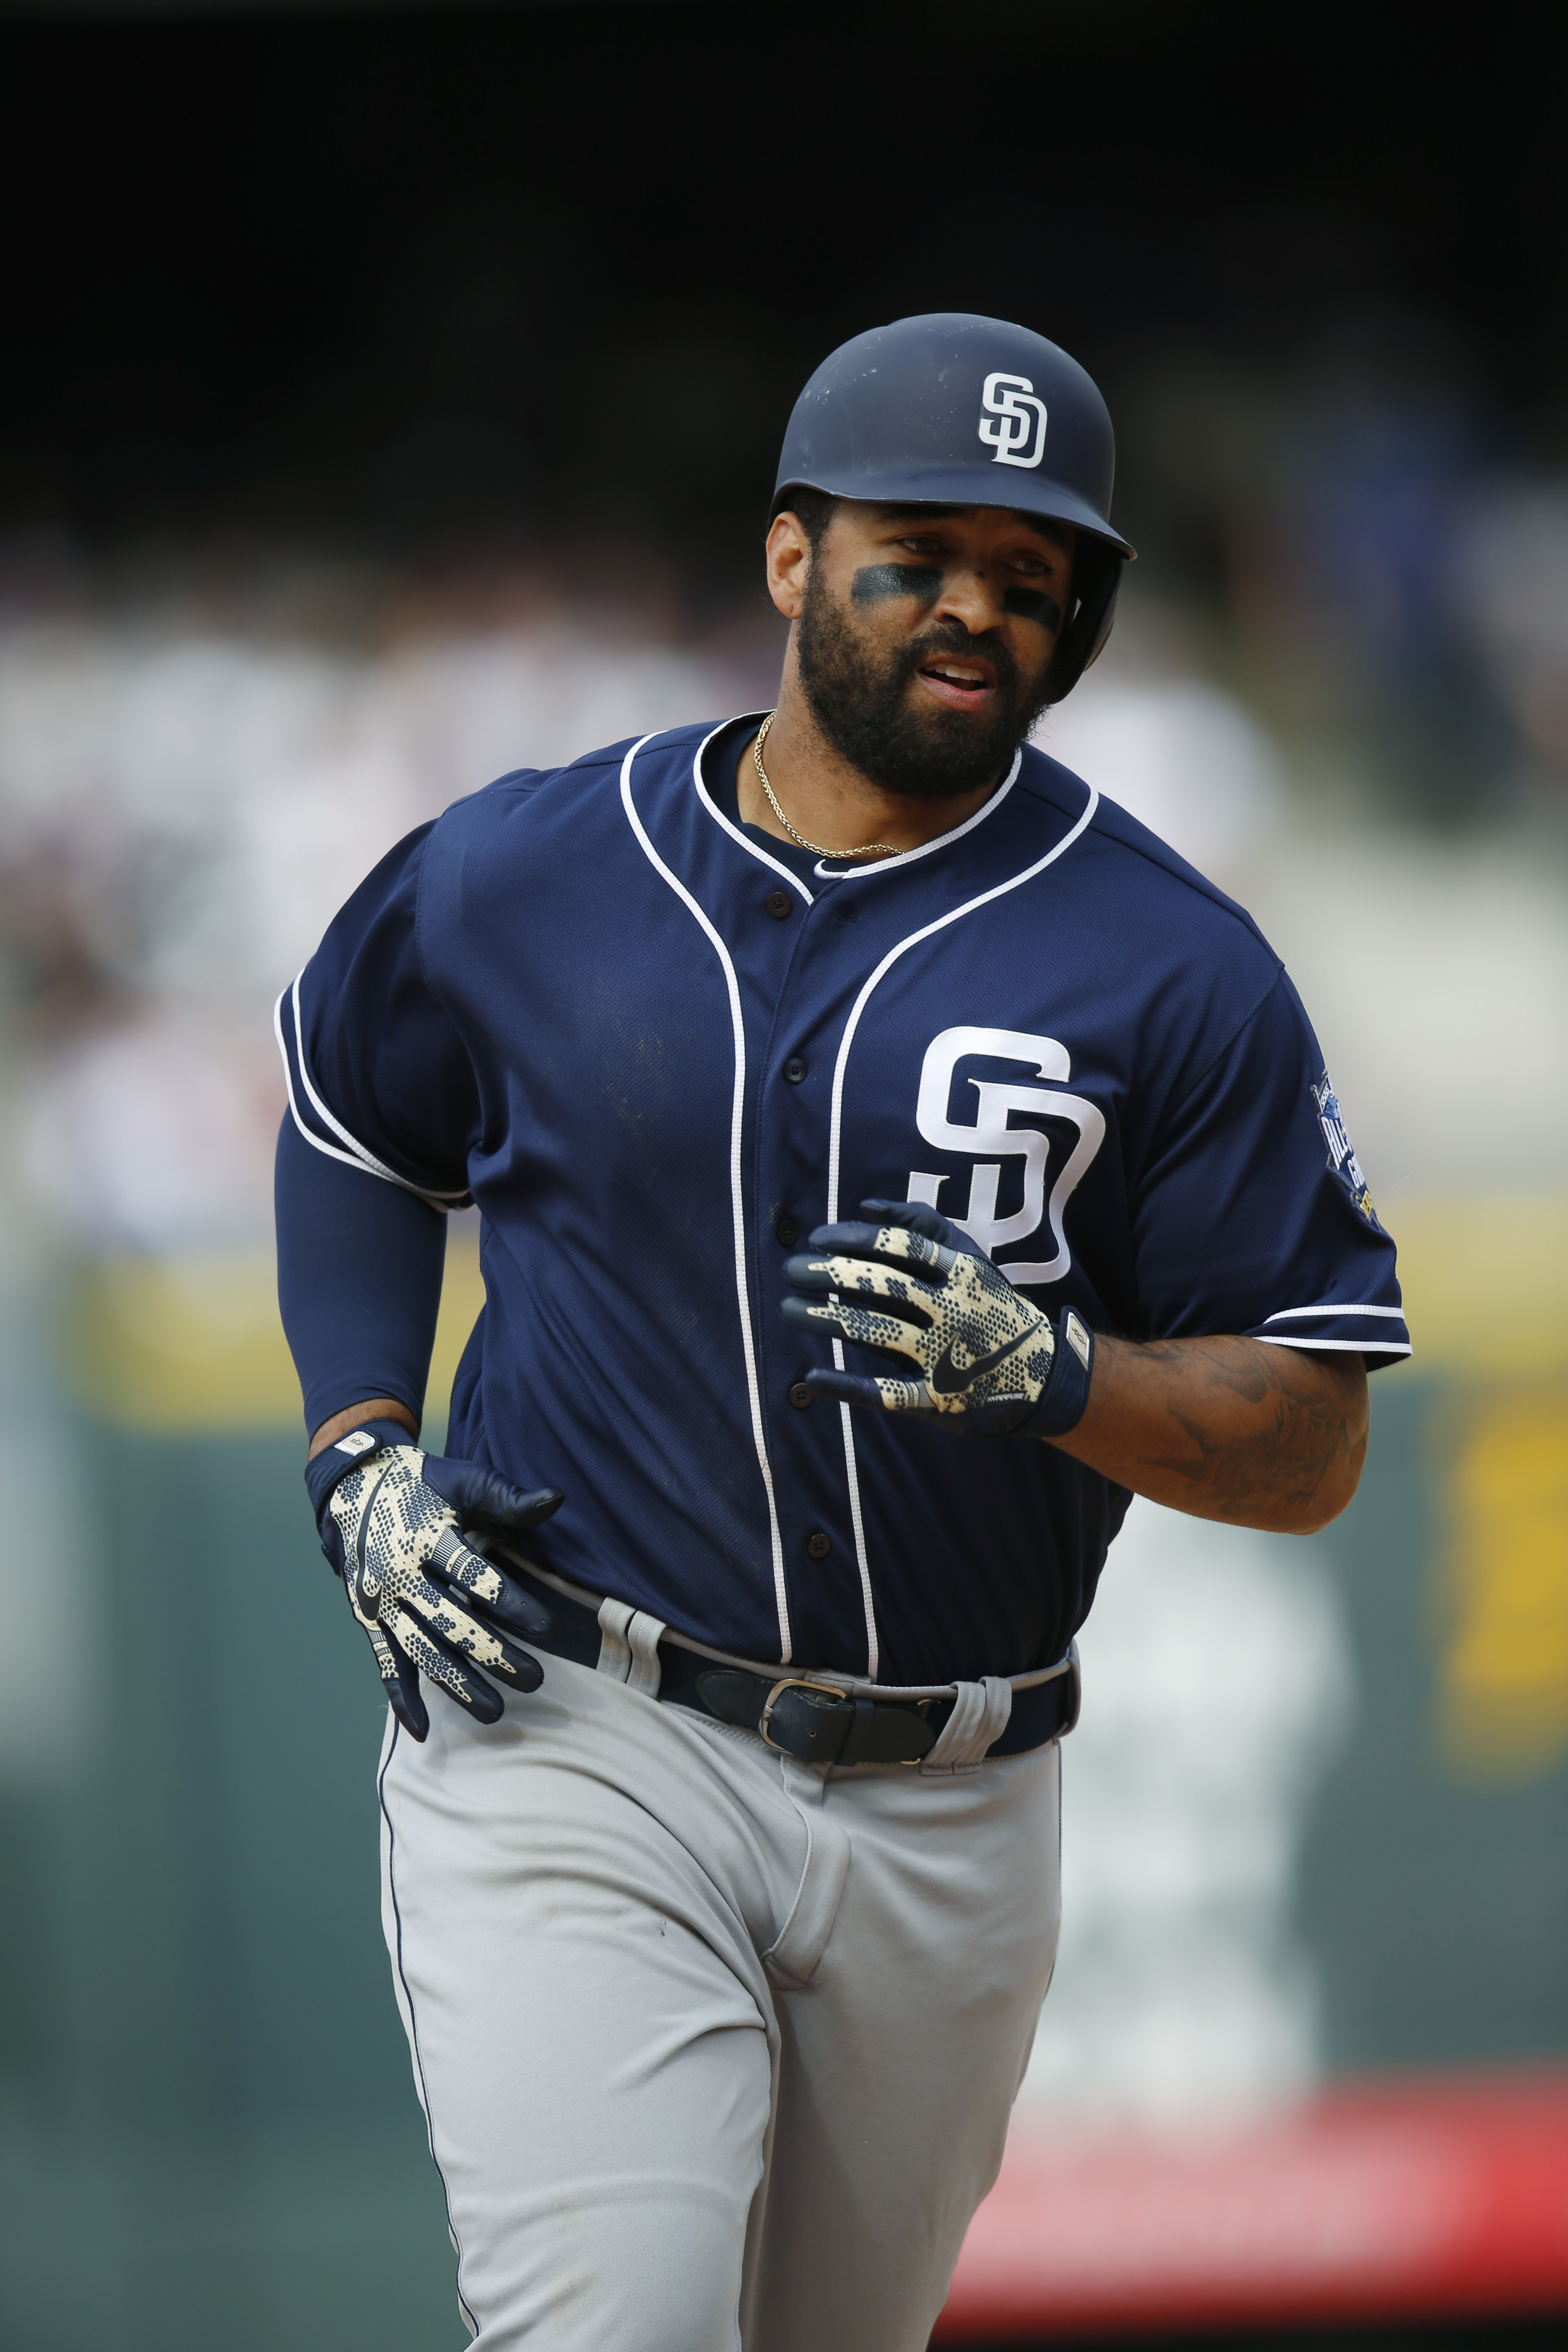 San Diego Padres' Matt Kemp circles the bases after hitting a three-run home run off Colorado Rockies relief pitcher Justin Miller in the fifth inning of a baseball game Friday, April 8, 2016, in Denver. (AP Photo/David Zalubowski)